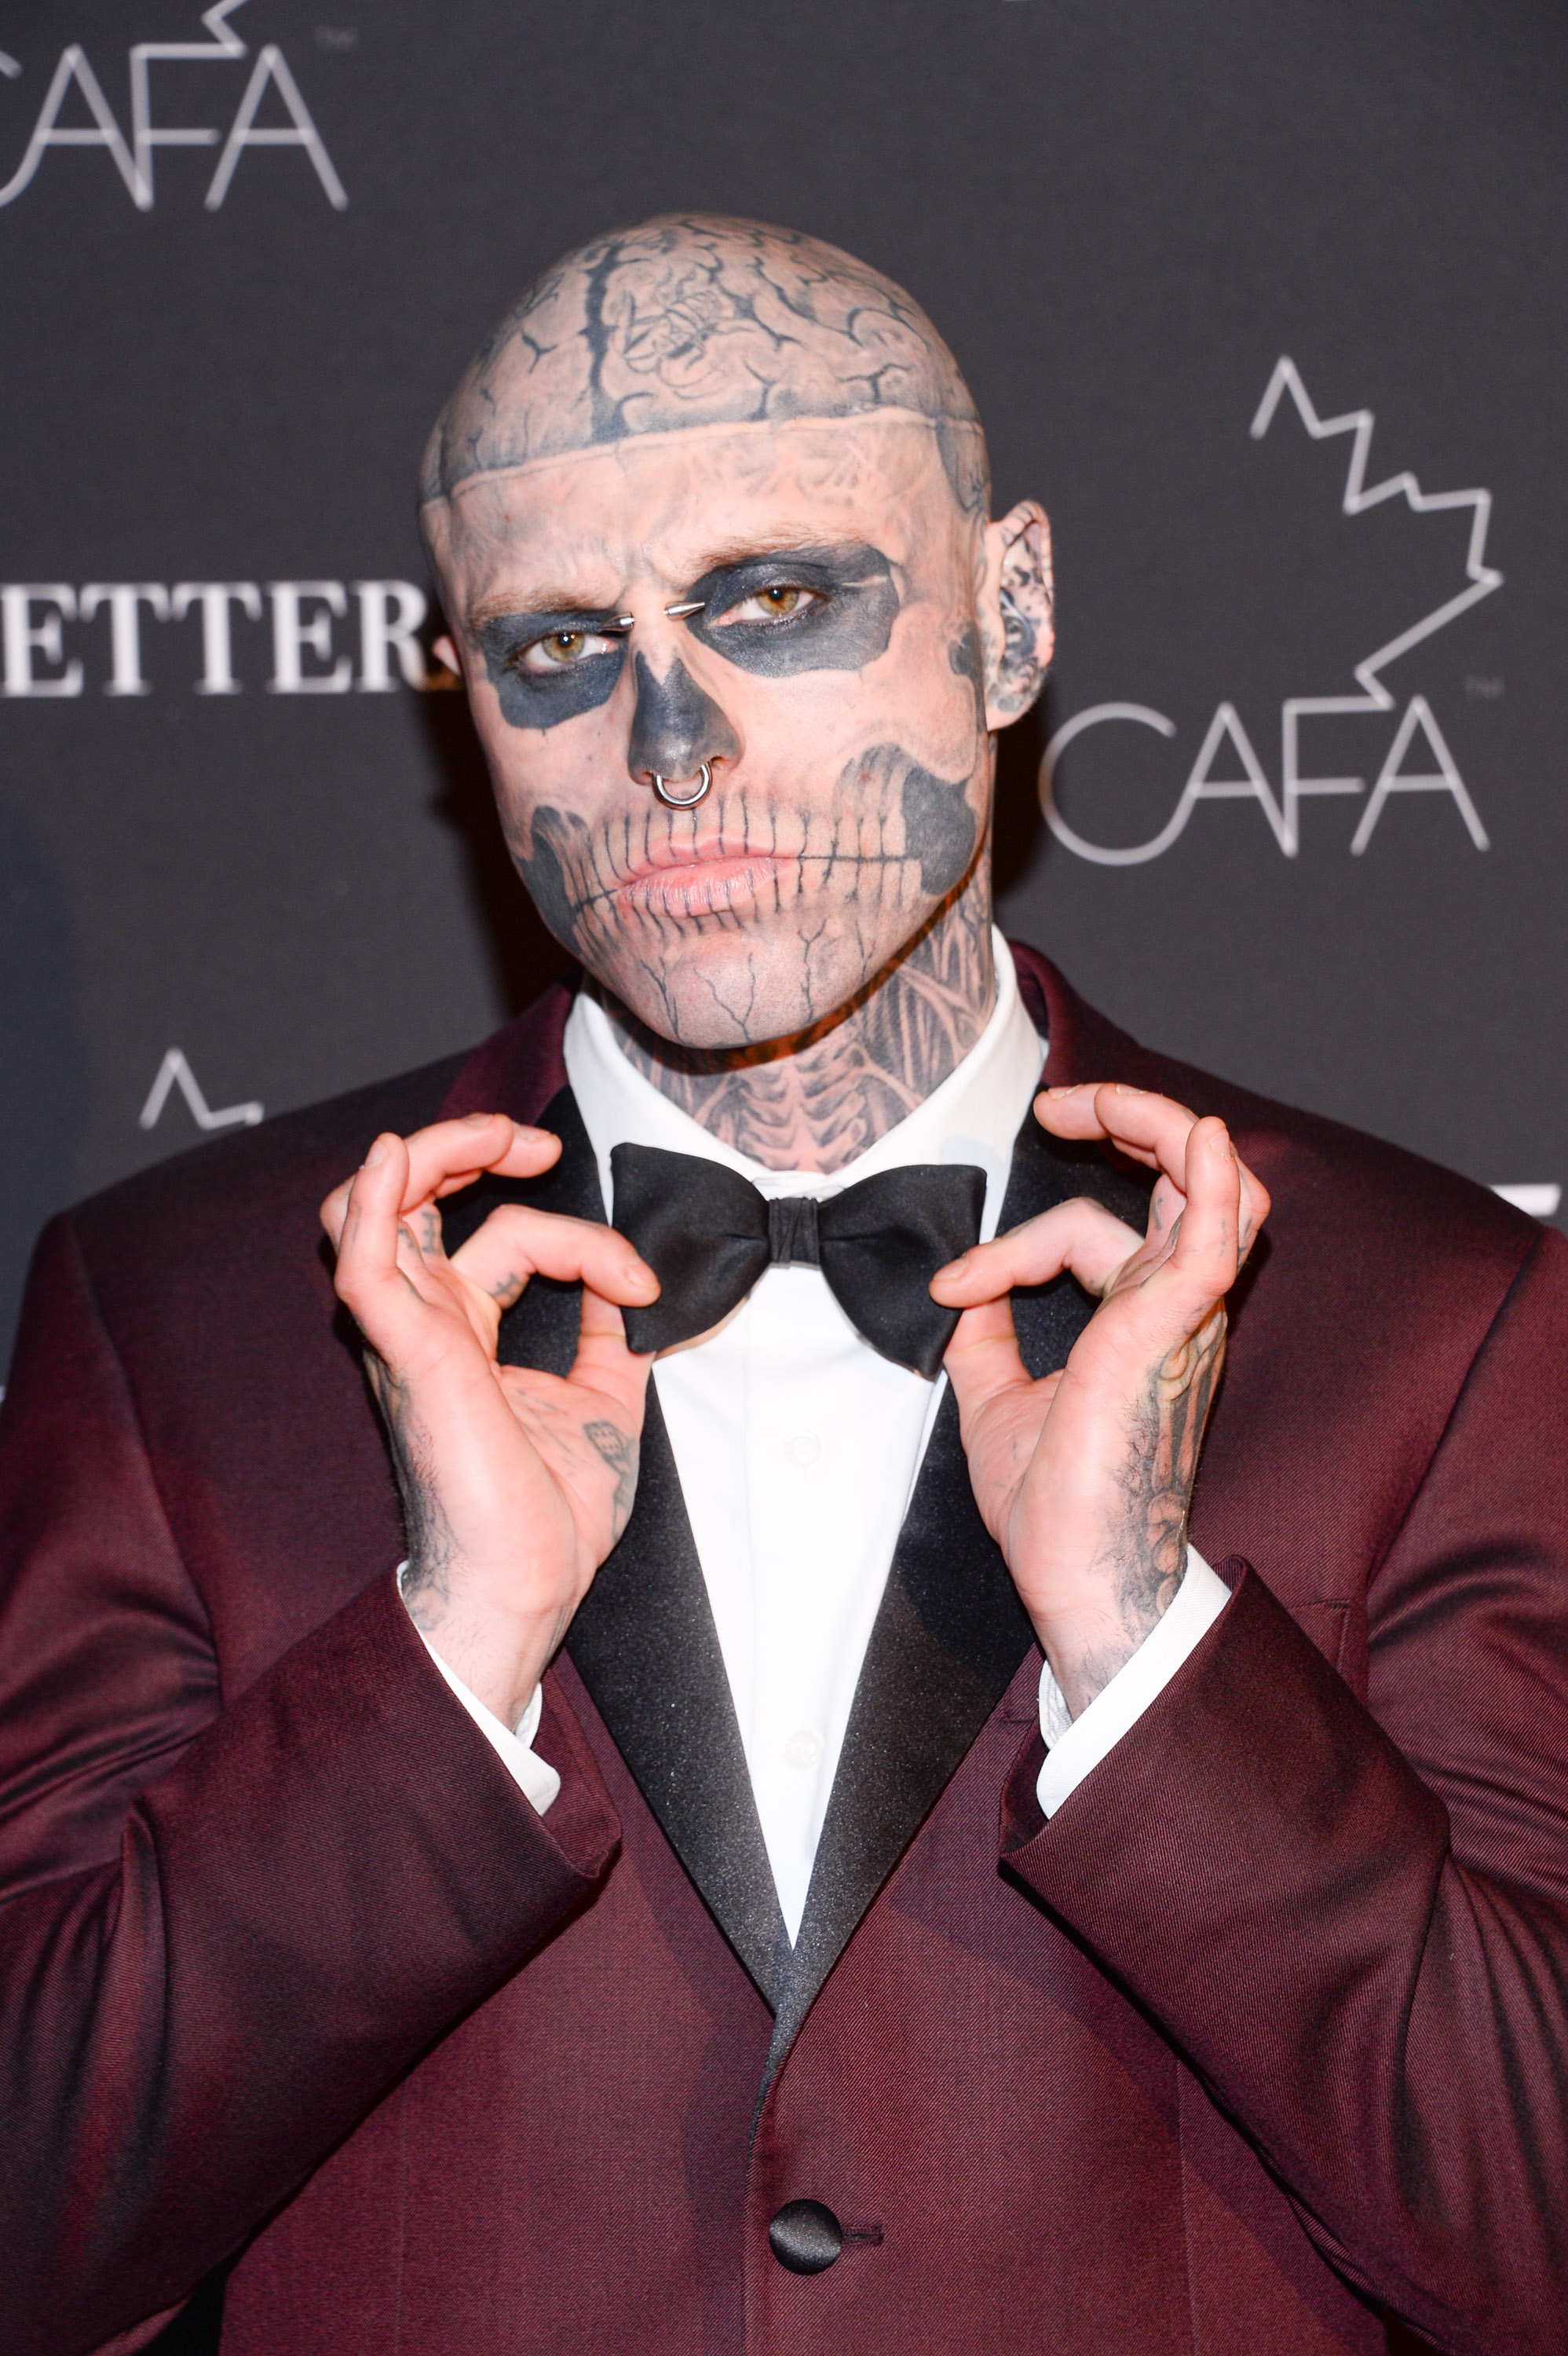 Zombie Boy Rick Genest Who Starred In Born This Way Video, Found Dead Aged 32 GettyImages 949300890